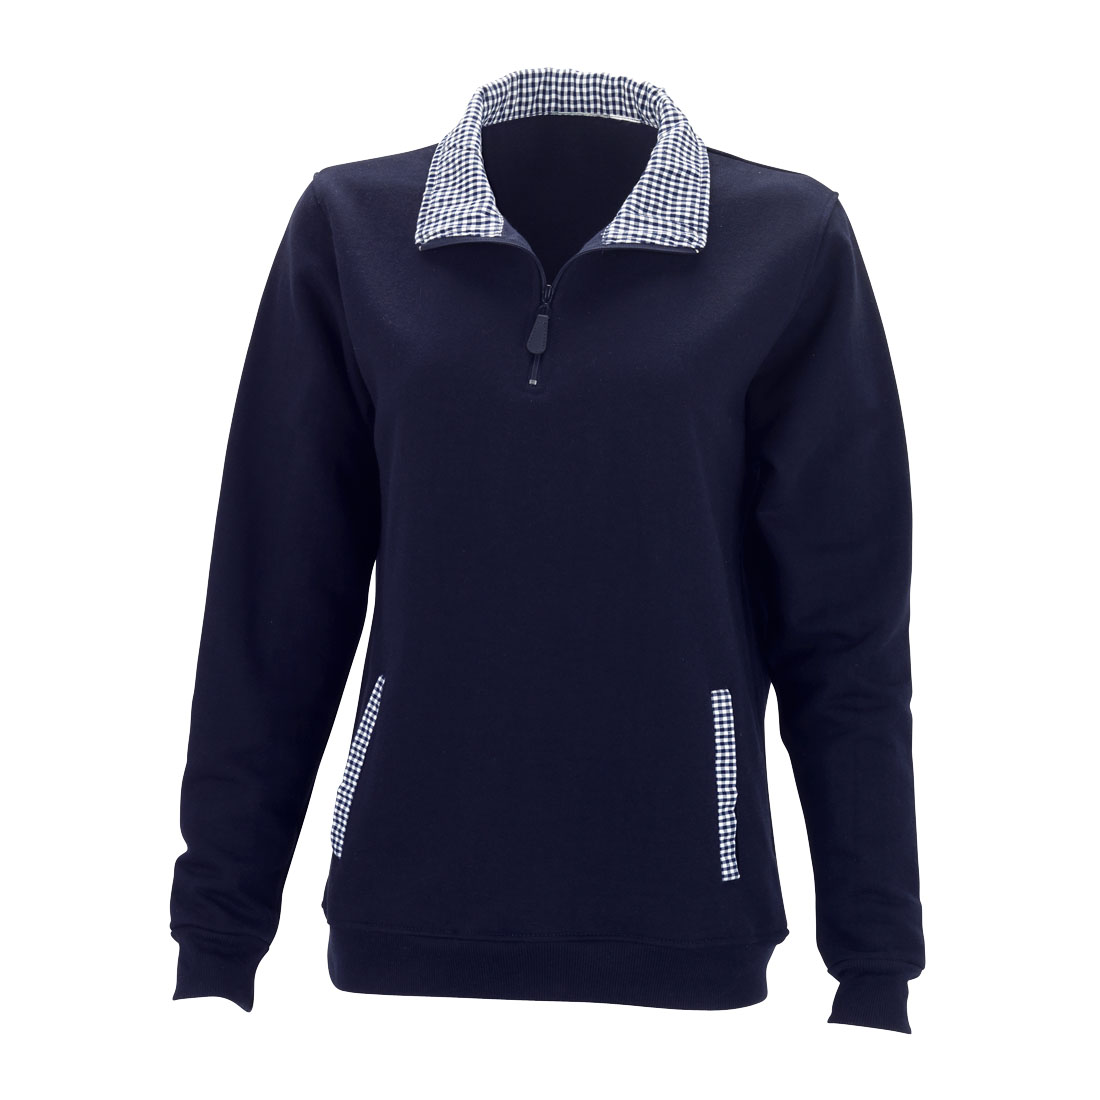 Navy Pullover - Gingham